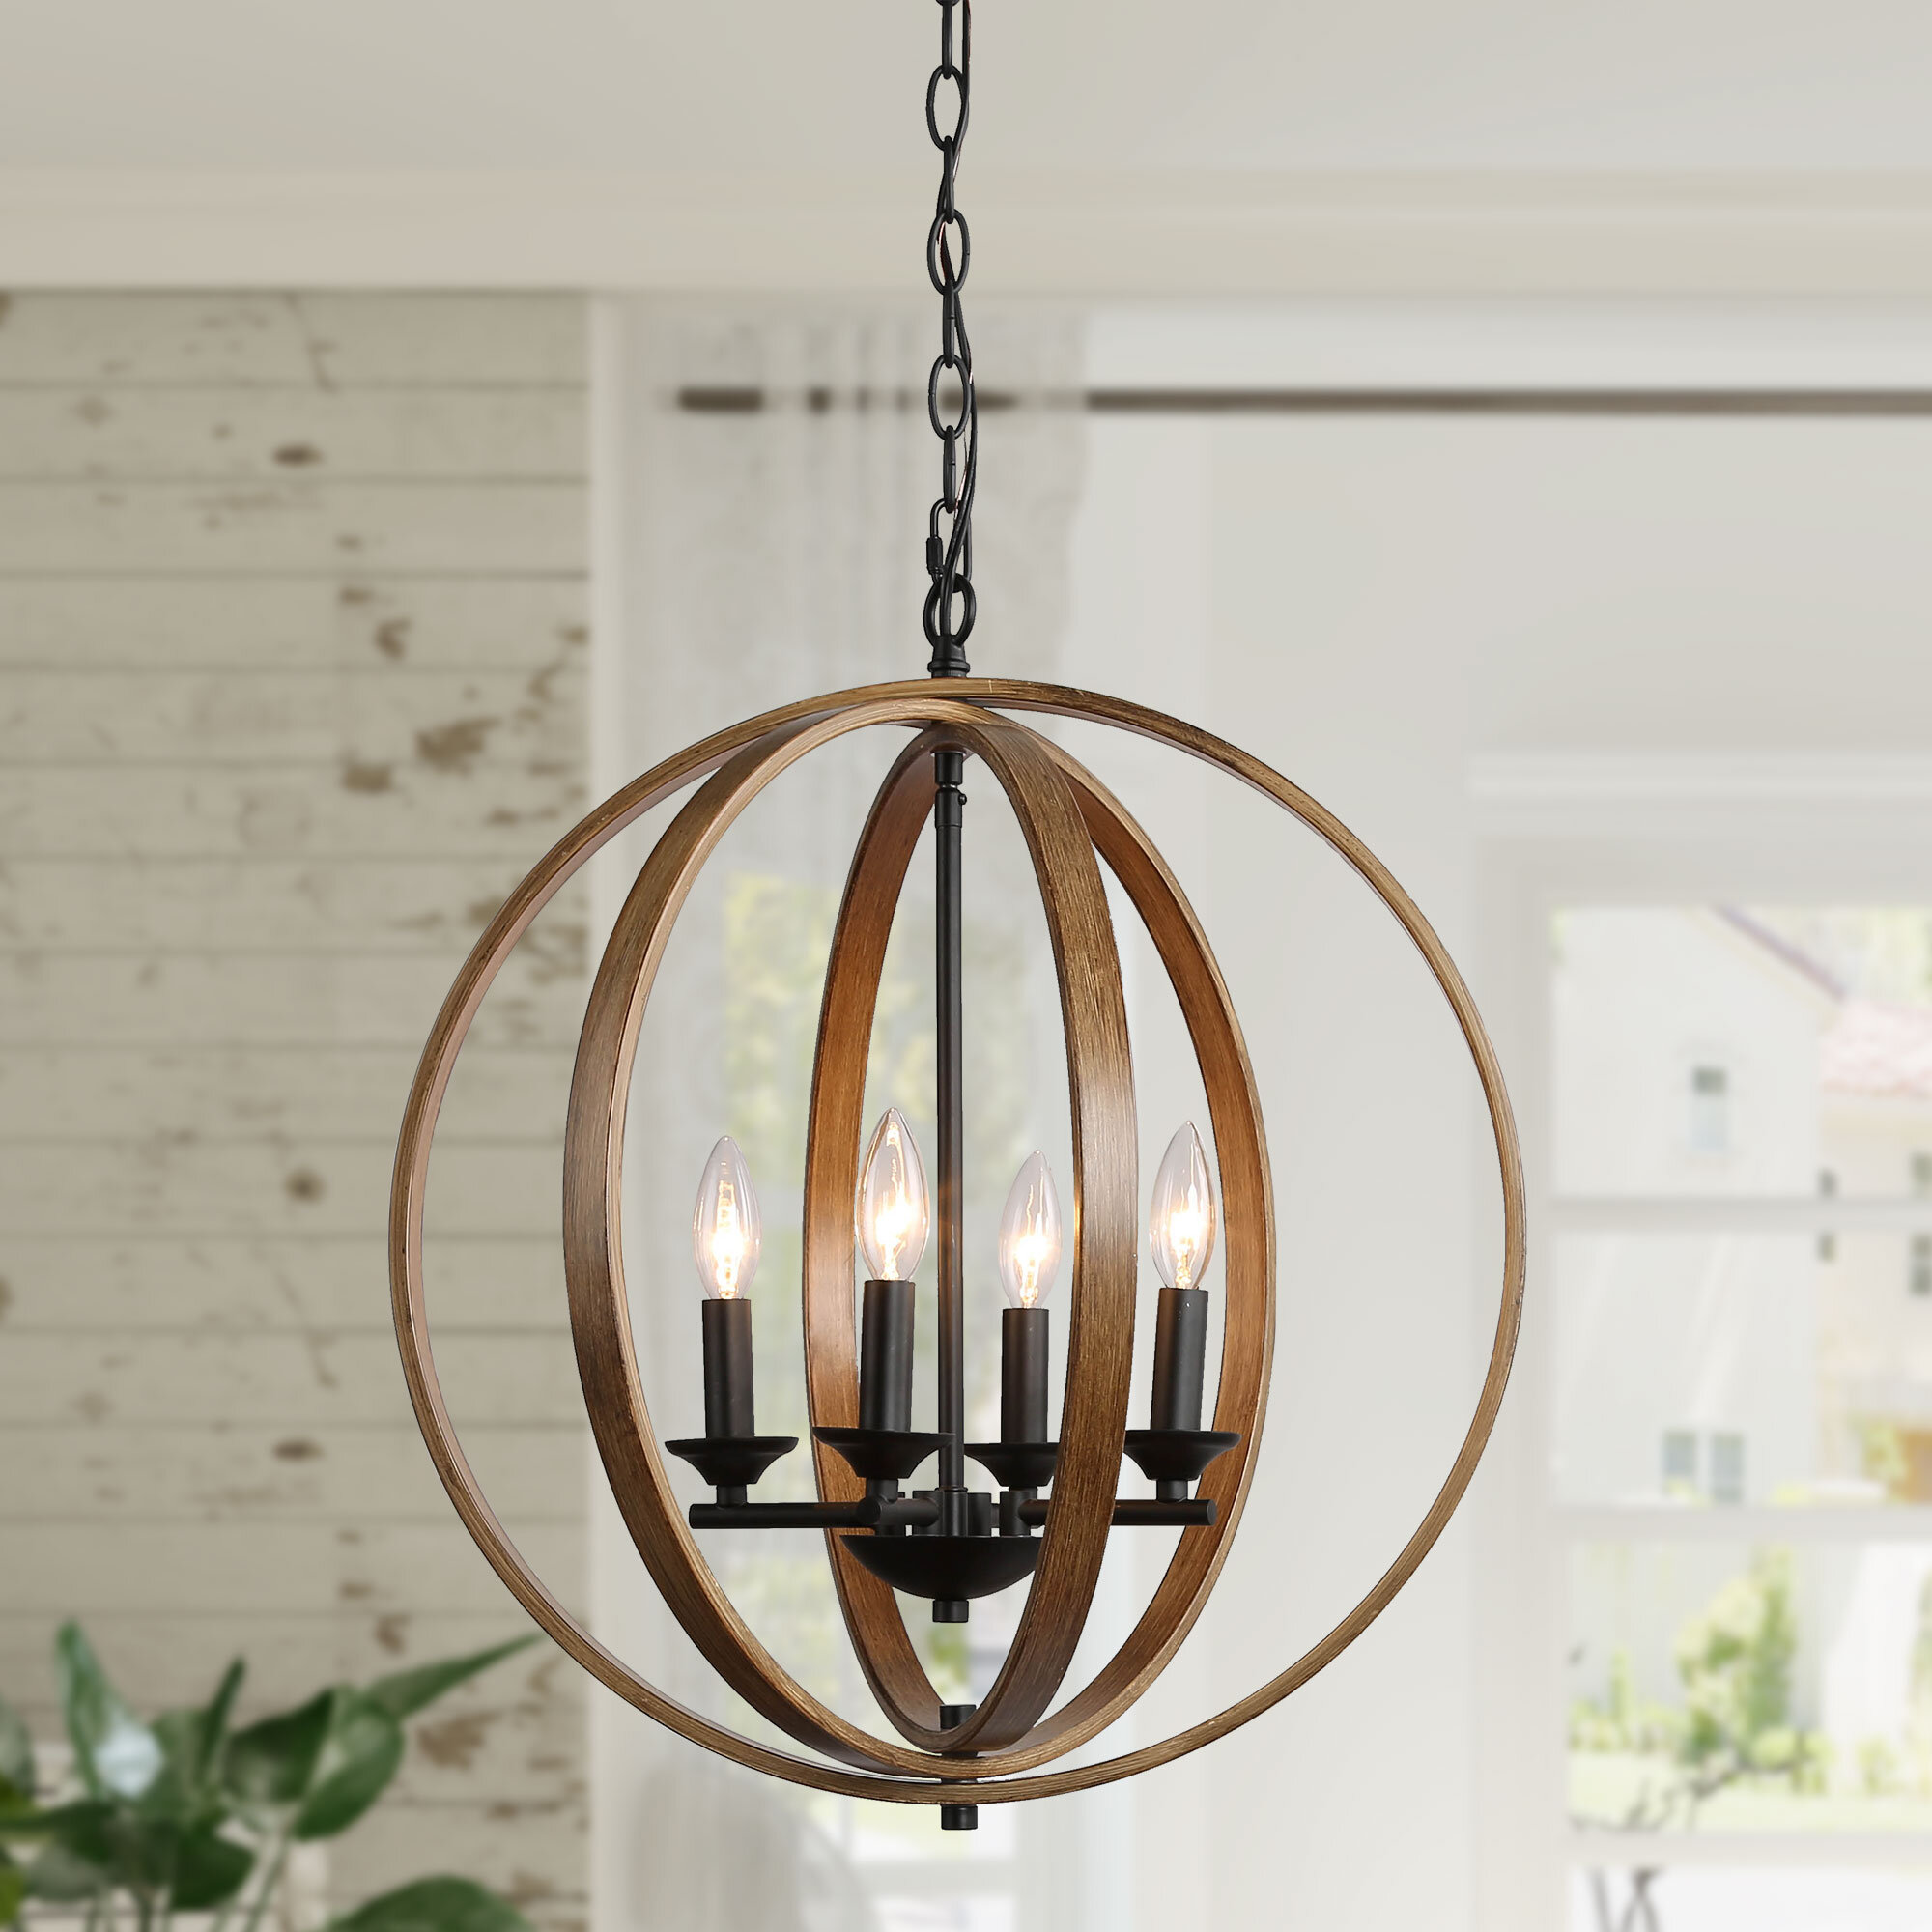 Gracie Oaks Motter 4 Light Candle Style Globe Chandelier Reviews Wayfair